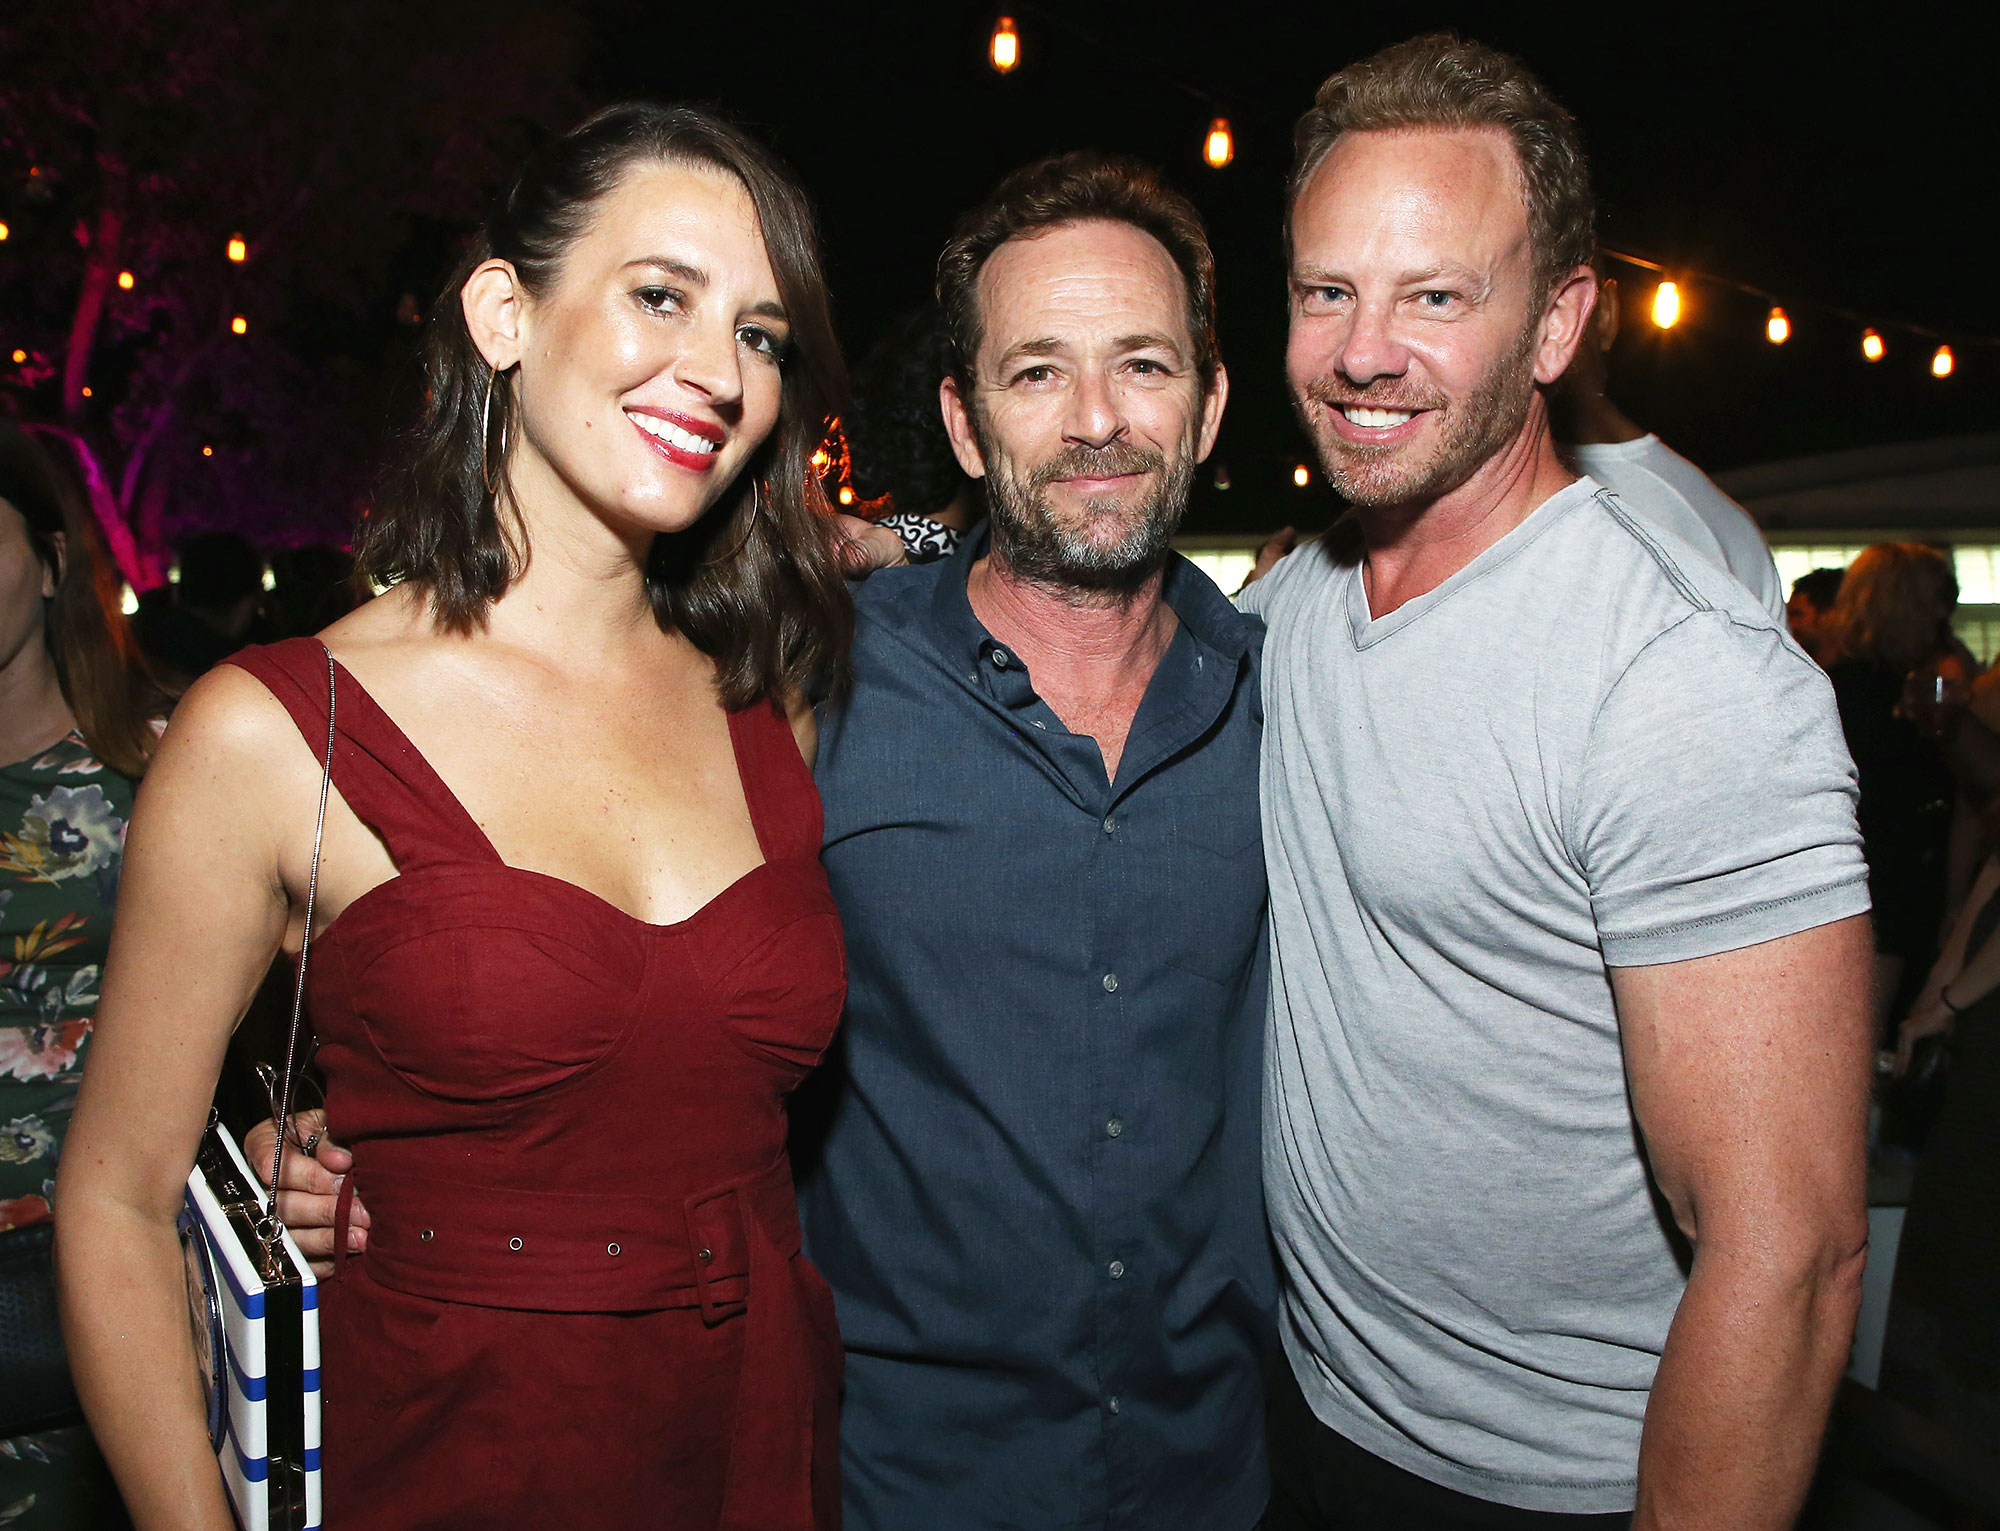 Ian Ziering Shares Luke Perry Story - Erin Ludwig, Luke Perry and Ian Ziering on July 21, 2018 in San Diego, California.